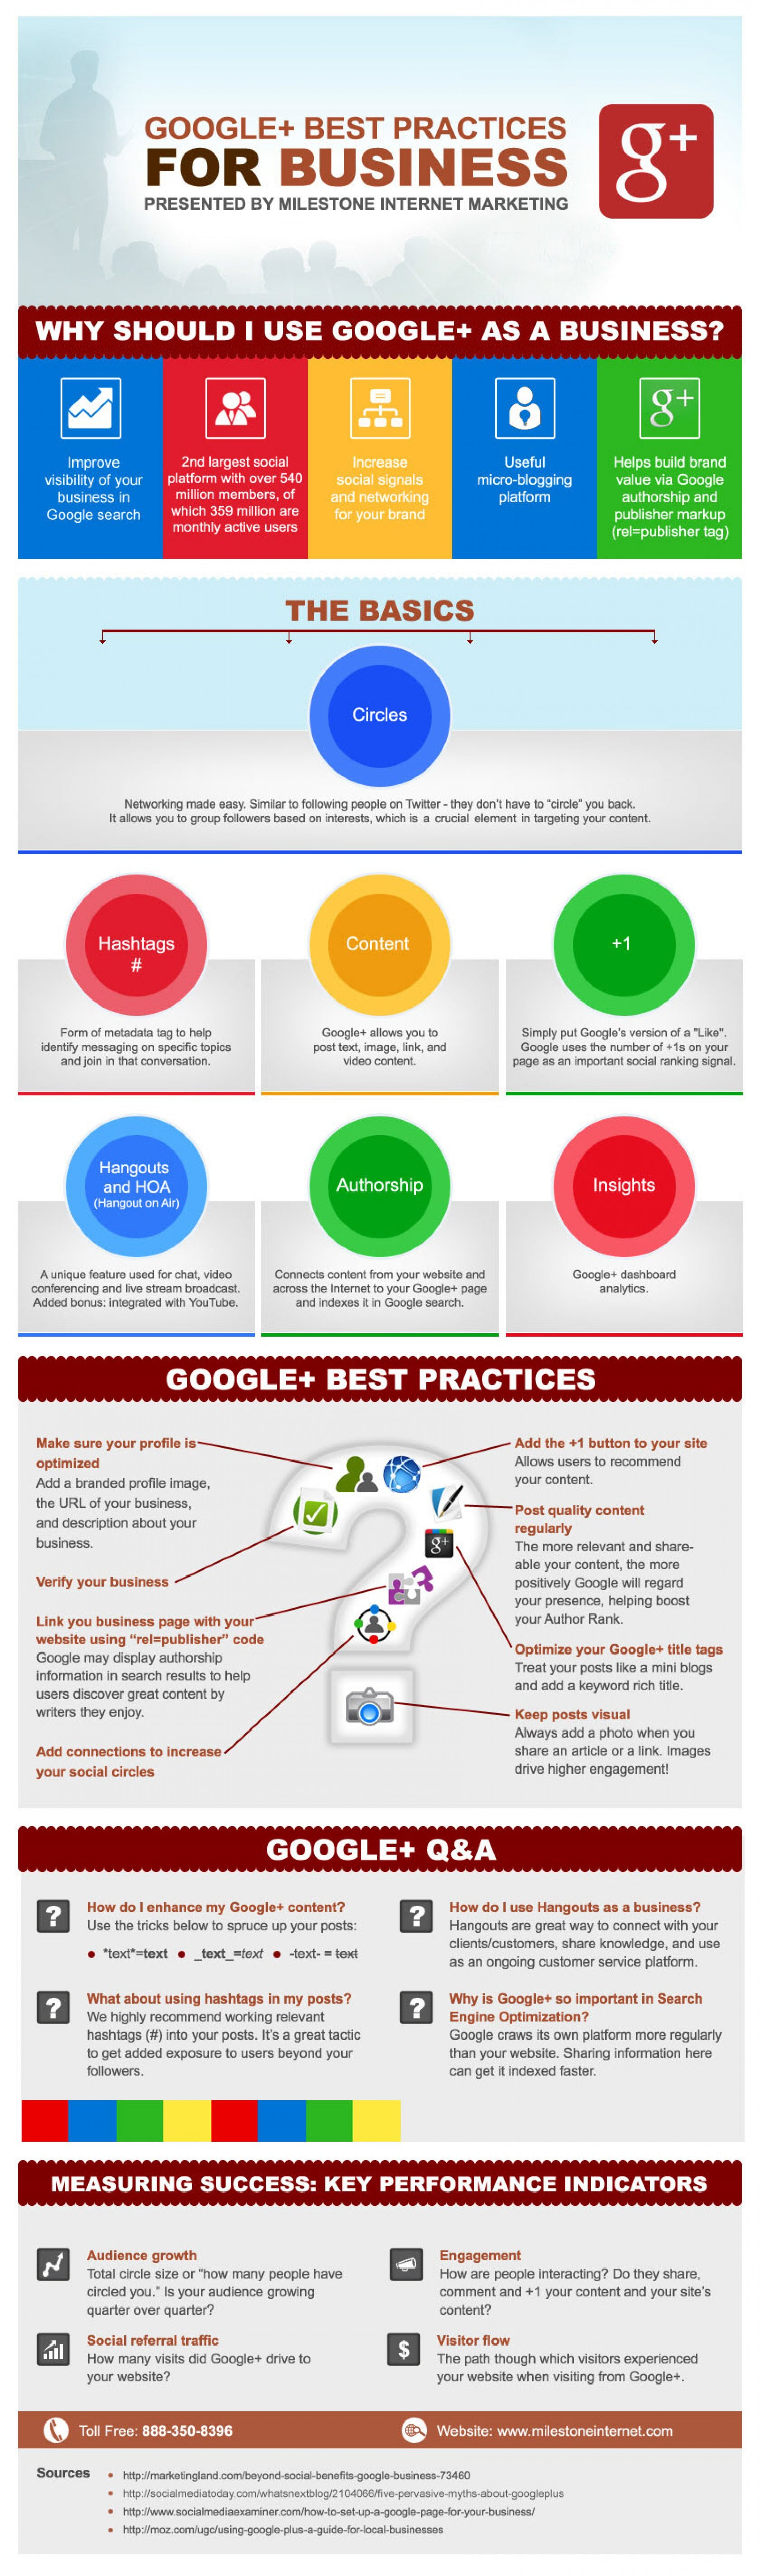 How-to-Use-Google-Plus-for-Business-Infographic-the-etail-blog-BestBuzz